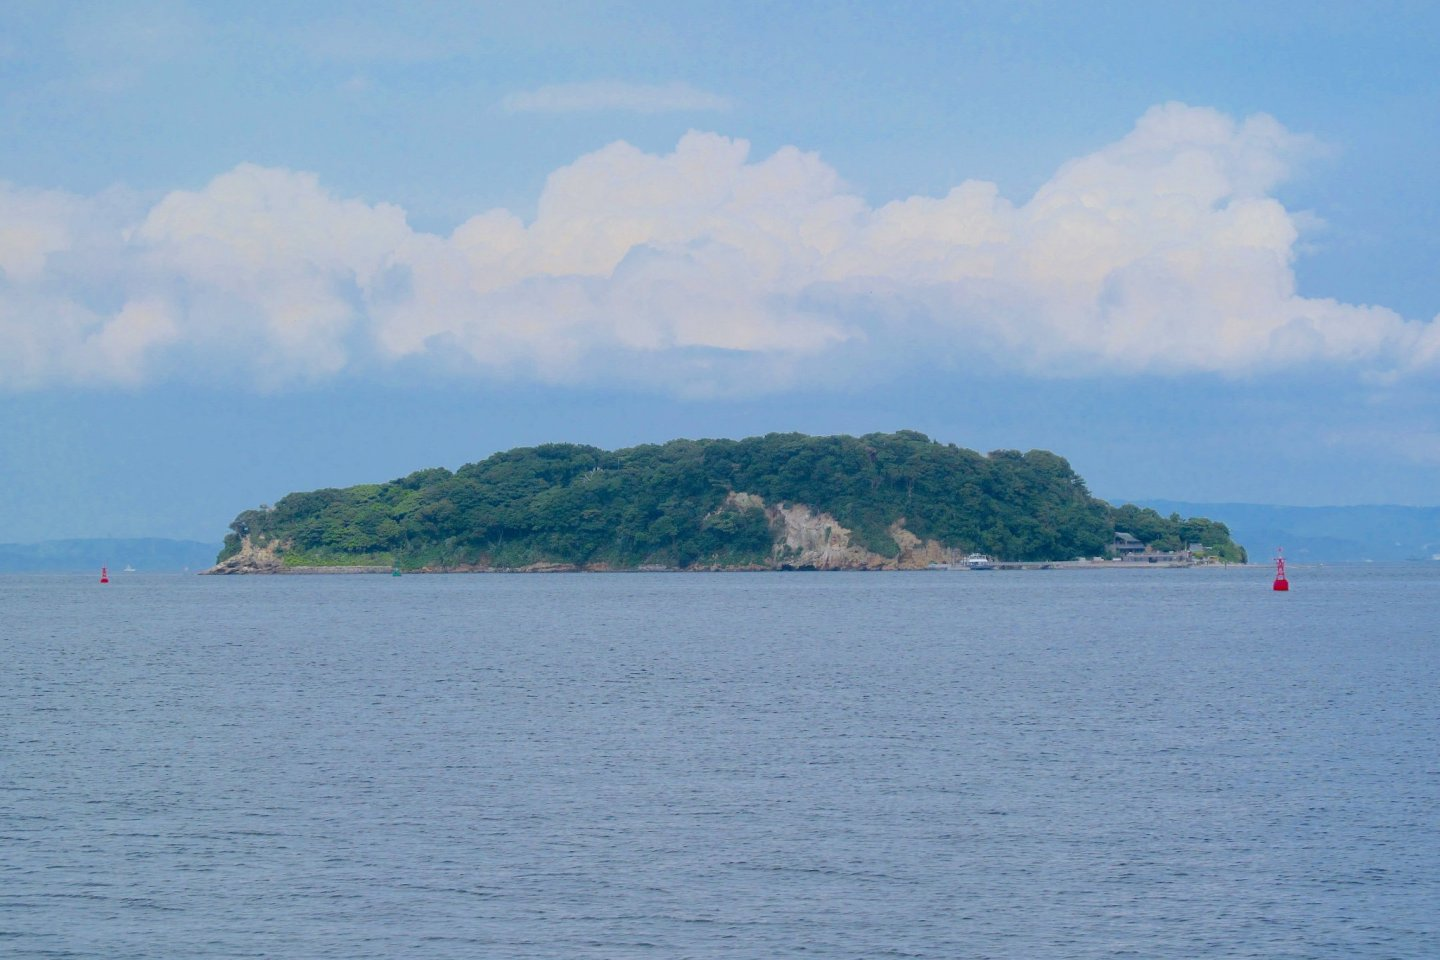 View of Sarushima from the ferry